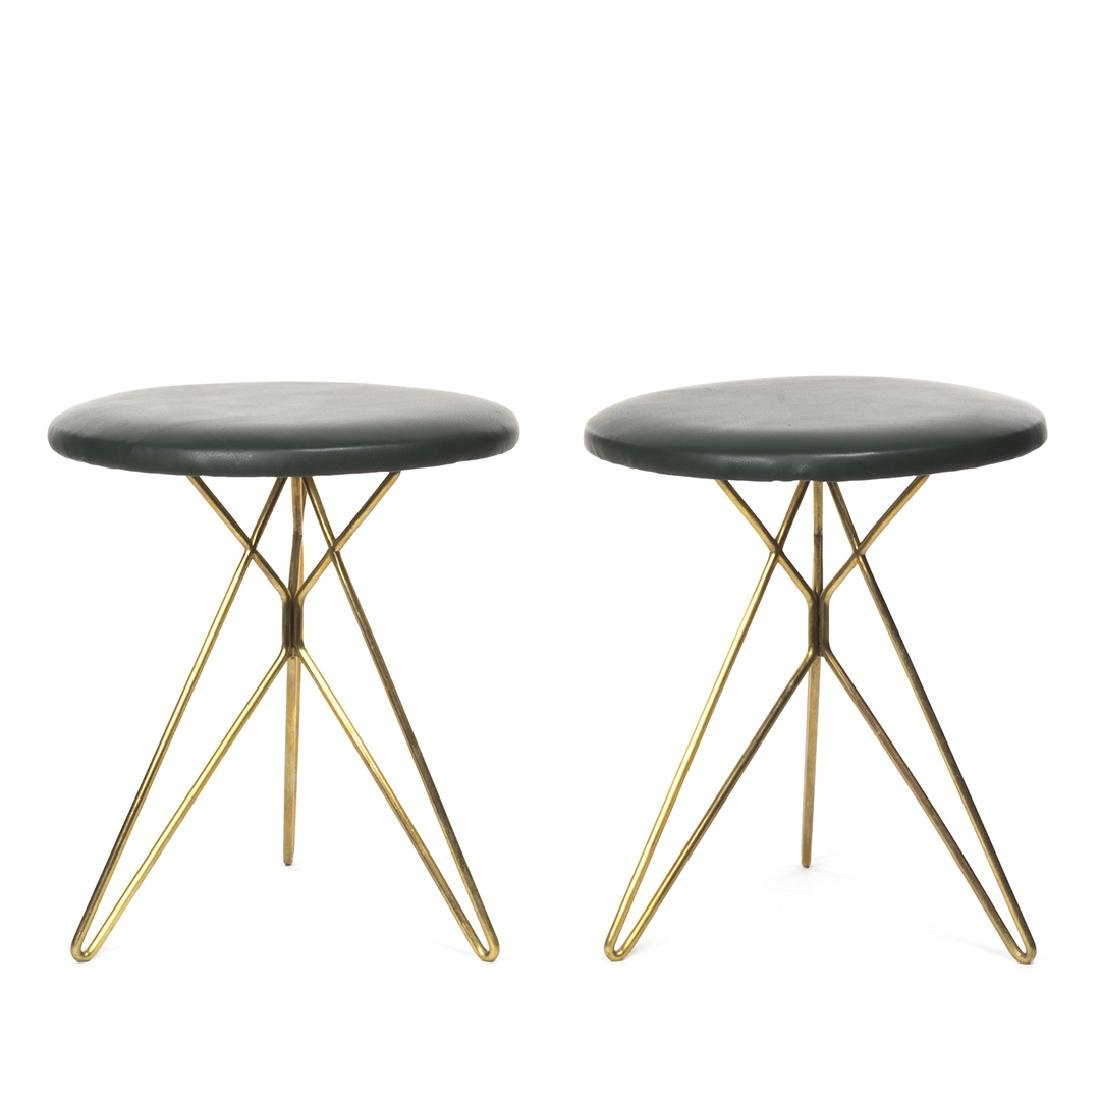 Italian leather and Brass Stools (2) - 2